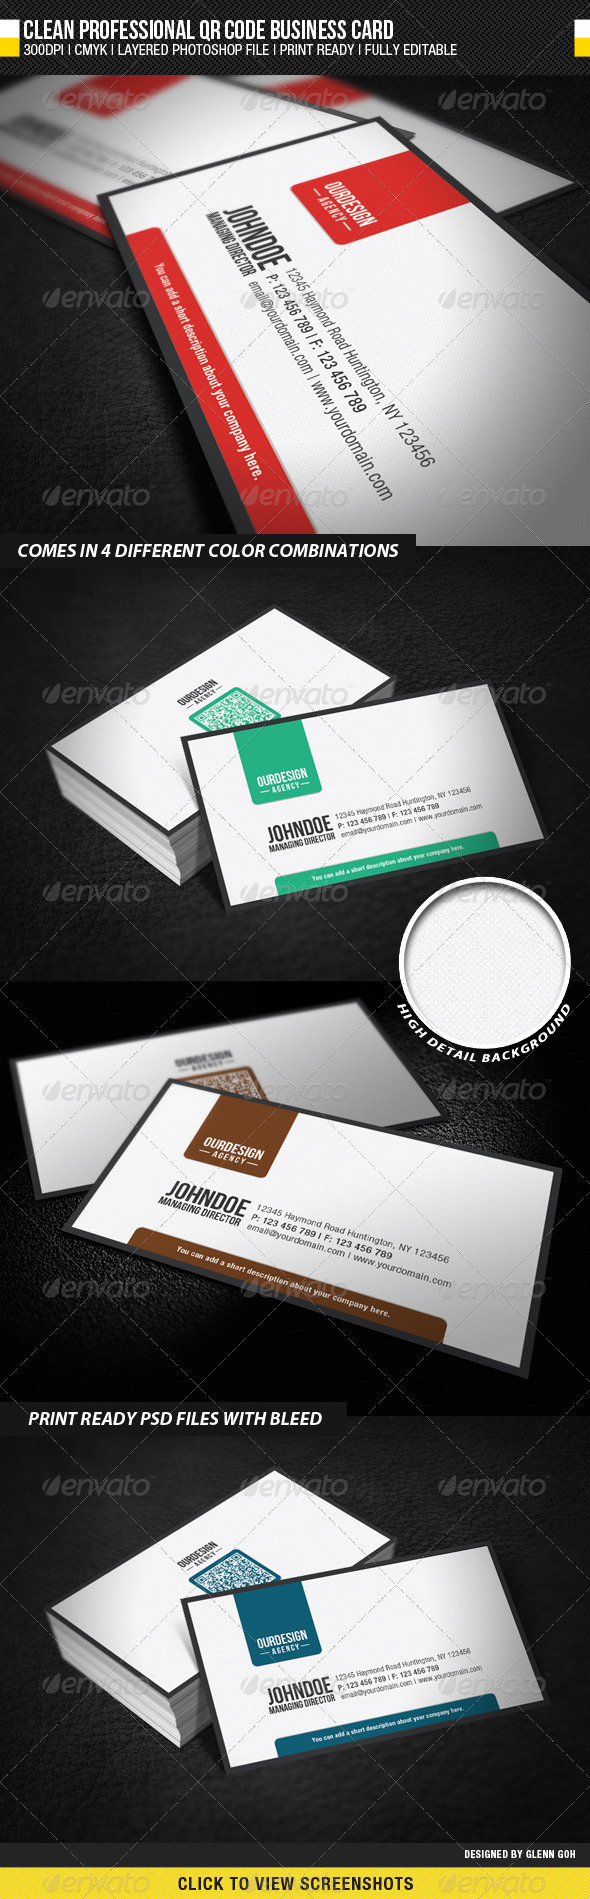 GraphicRiver Clean Professional QR Code Business Card 2161859